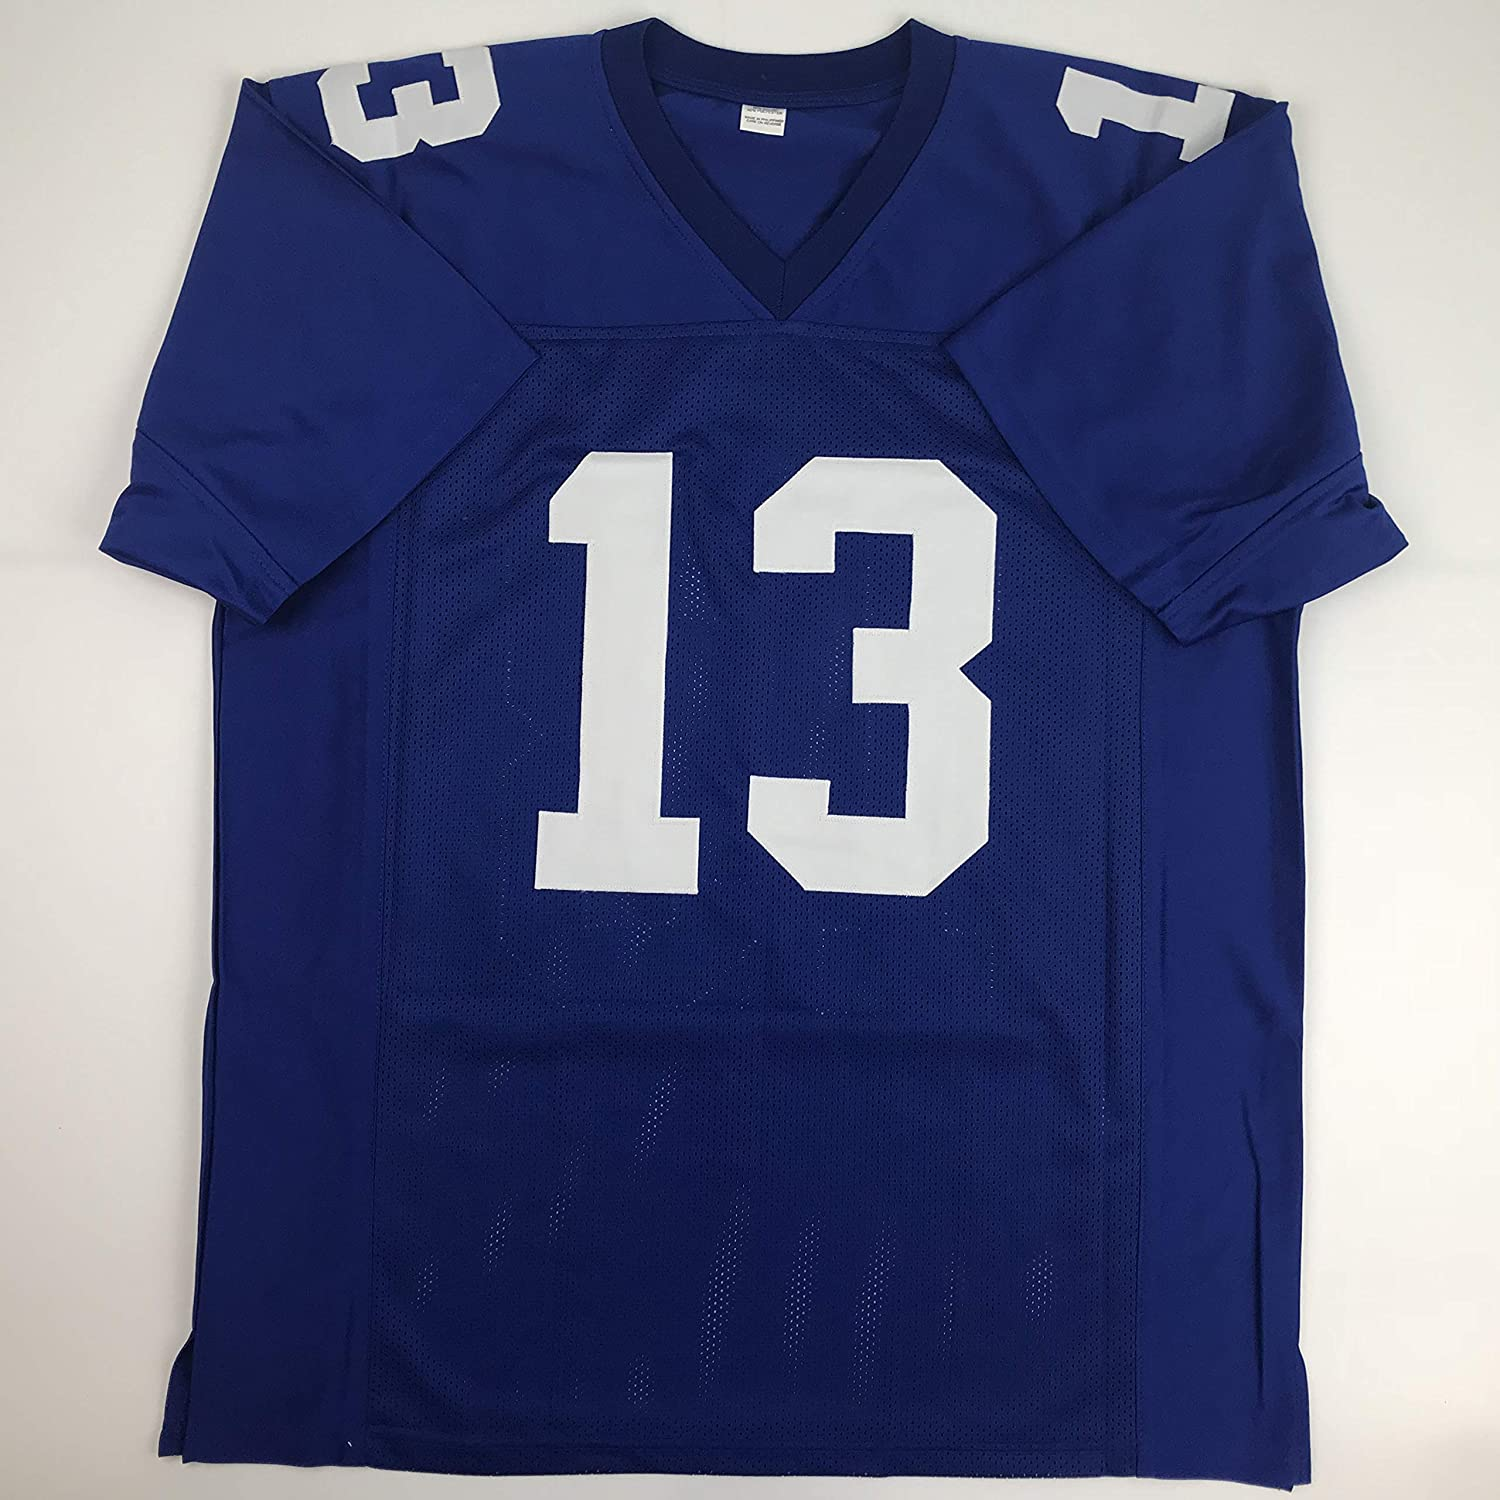 0a946620f Amazon.com: Unsigned Odell Beckham Jr. New York Blue Custom Stitched  Football Jersey Size XL New No Brands/Logos: Sports Collectibles